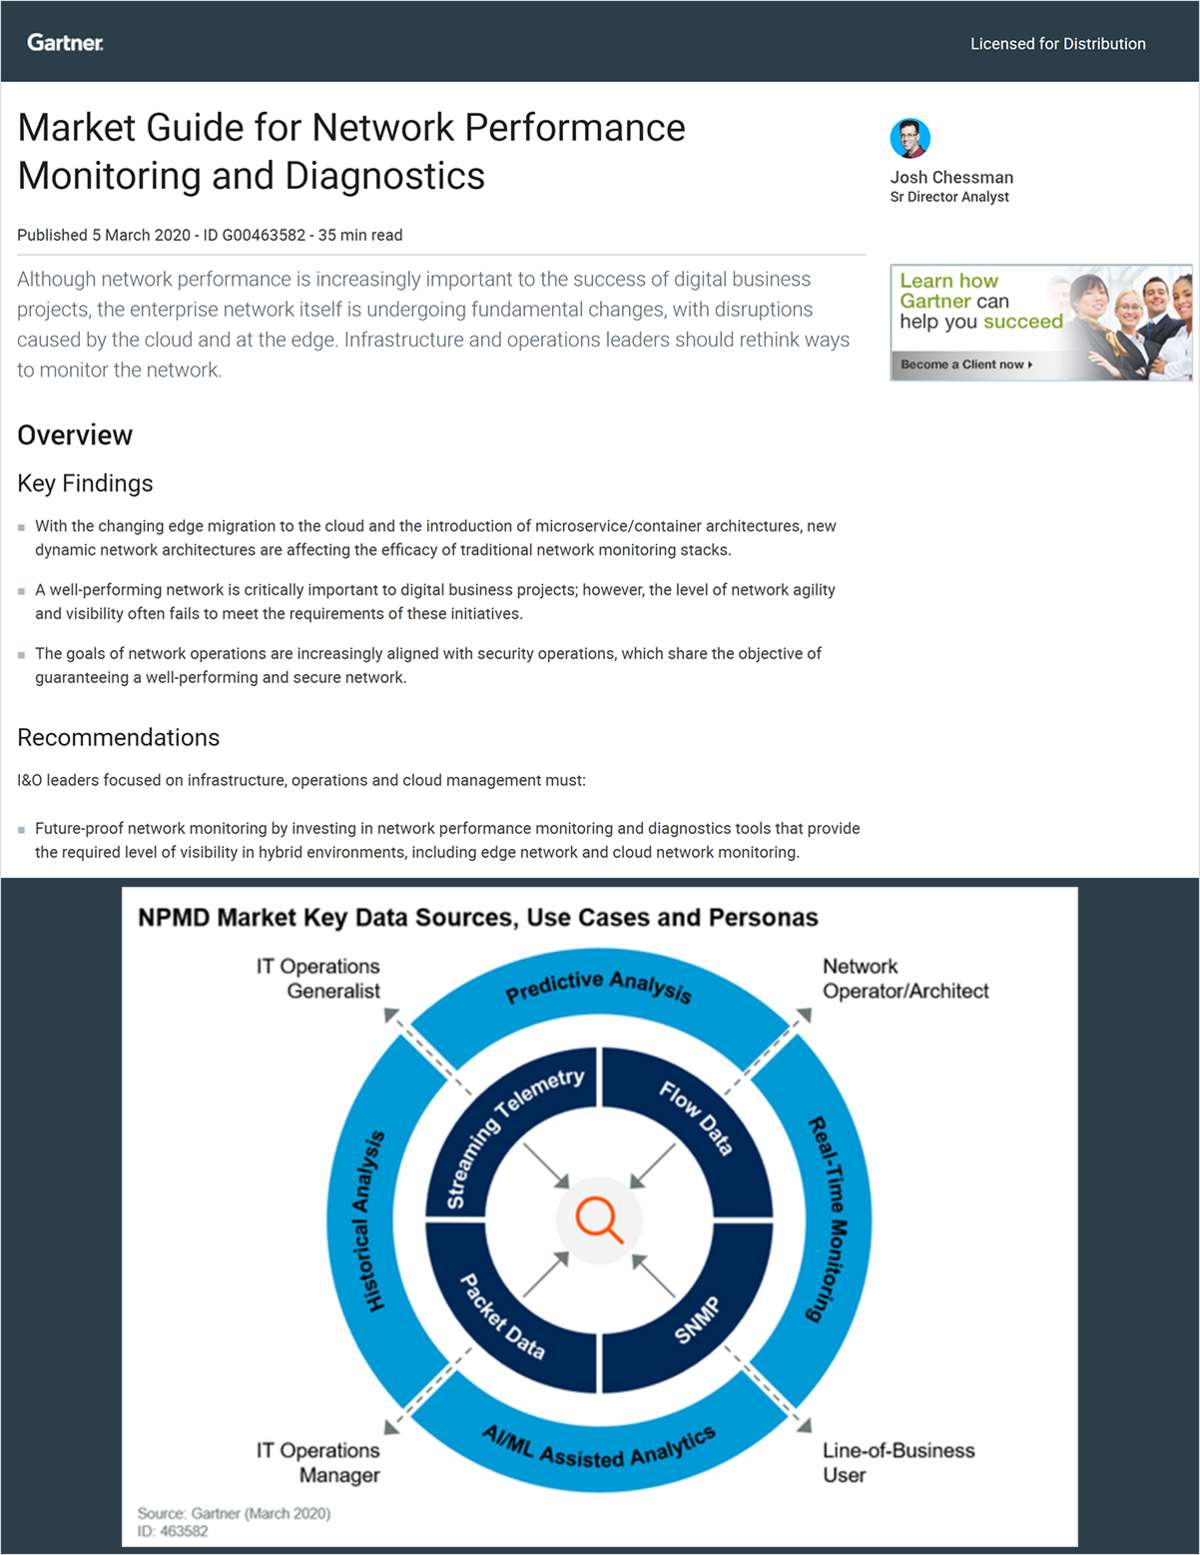 Gartner Market Guide for Network Performance Monitoring and Diagnostics, 2020